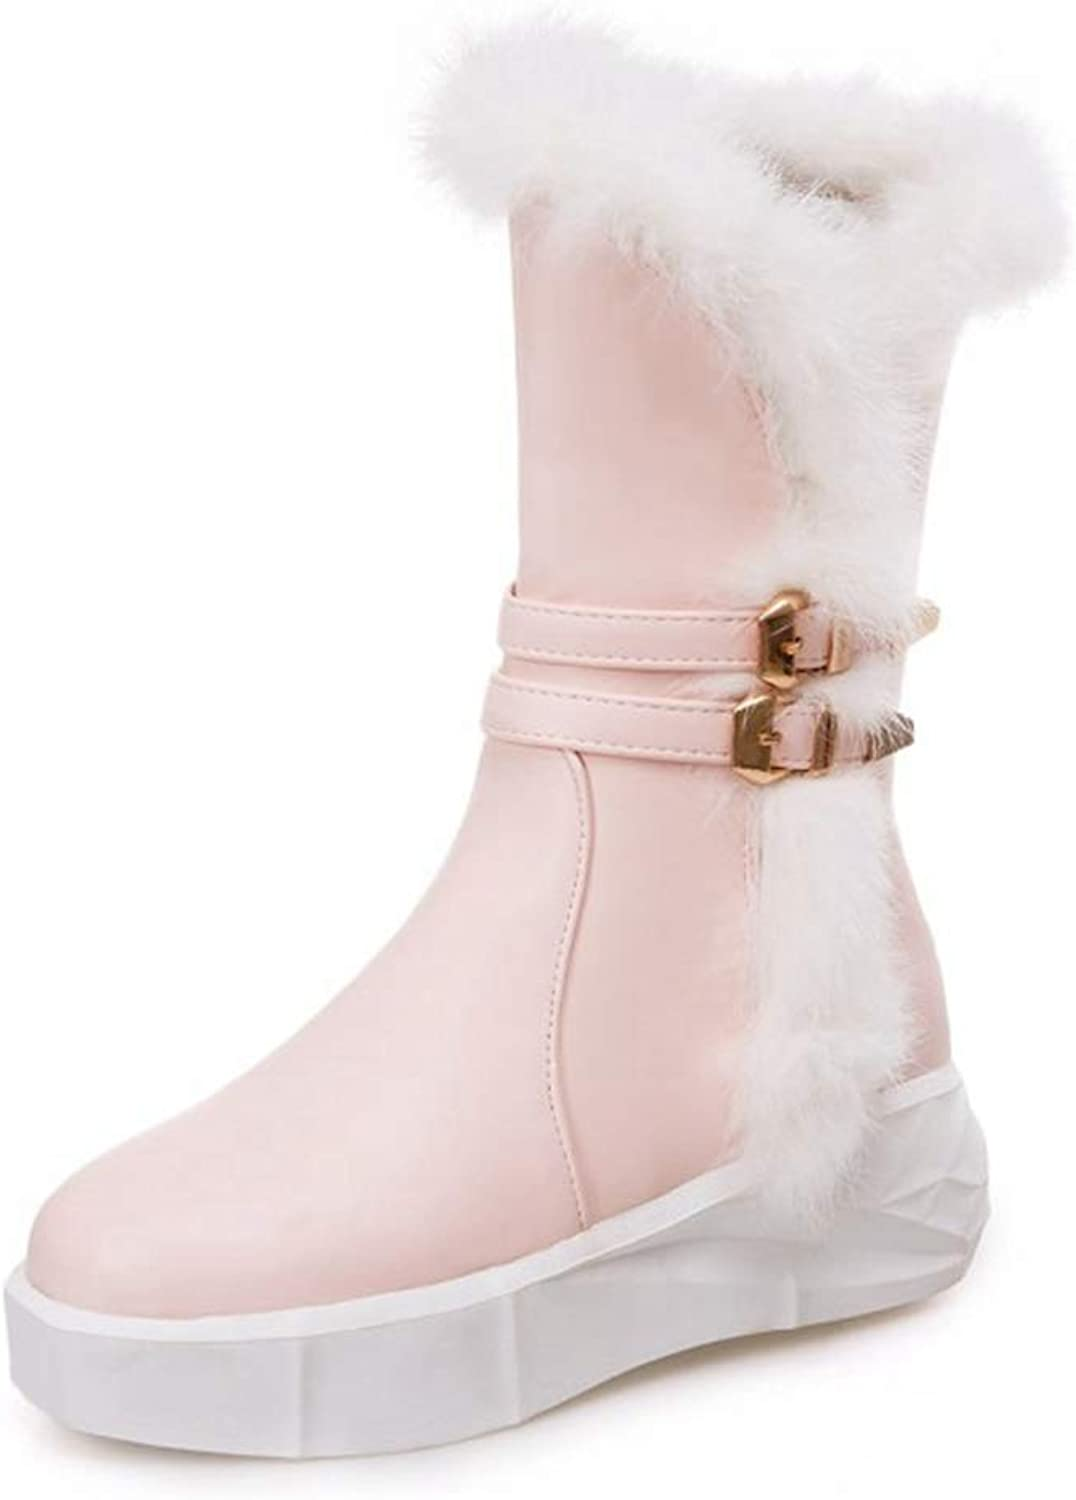 CYBLING Womens Cute Warm Snow Boots Buckle Straps Round Toe Platform Winter Mid Calf Boots